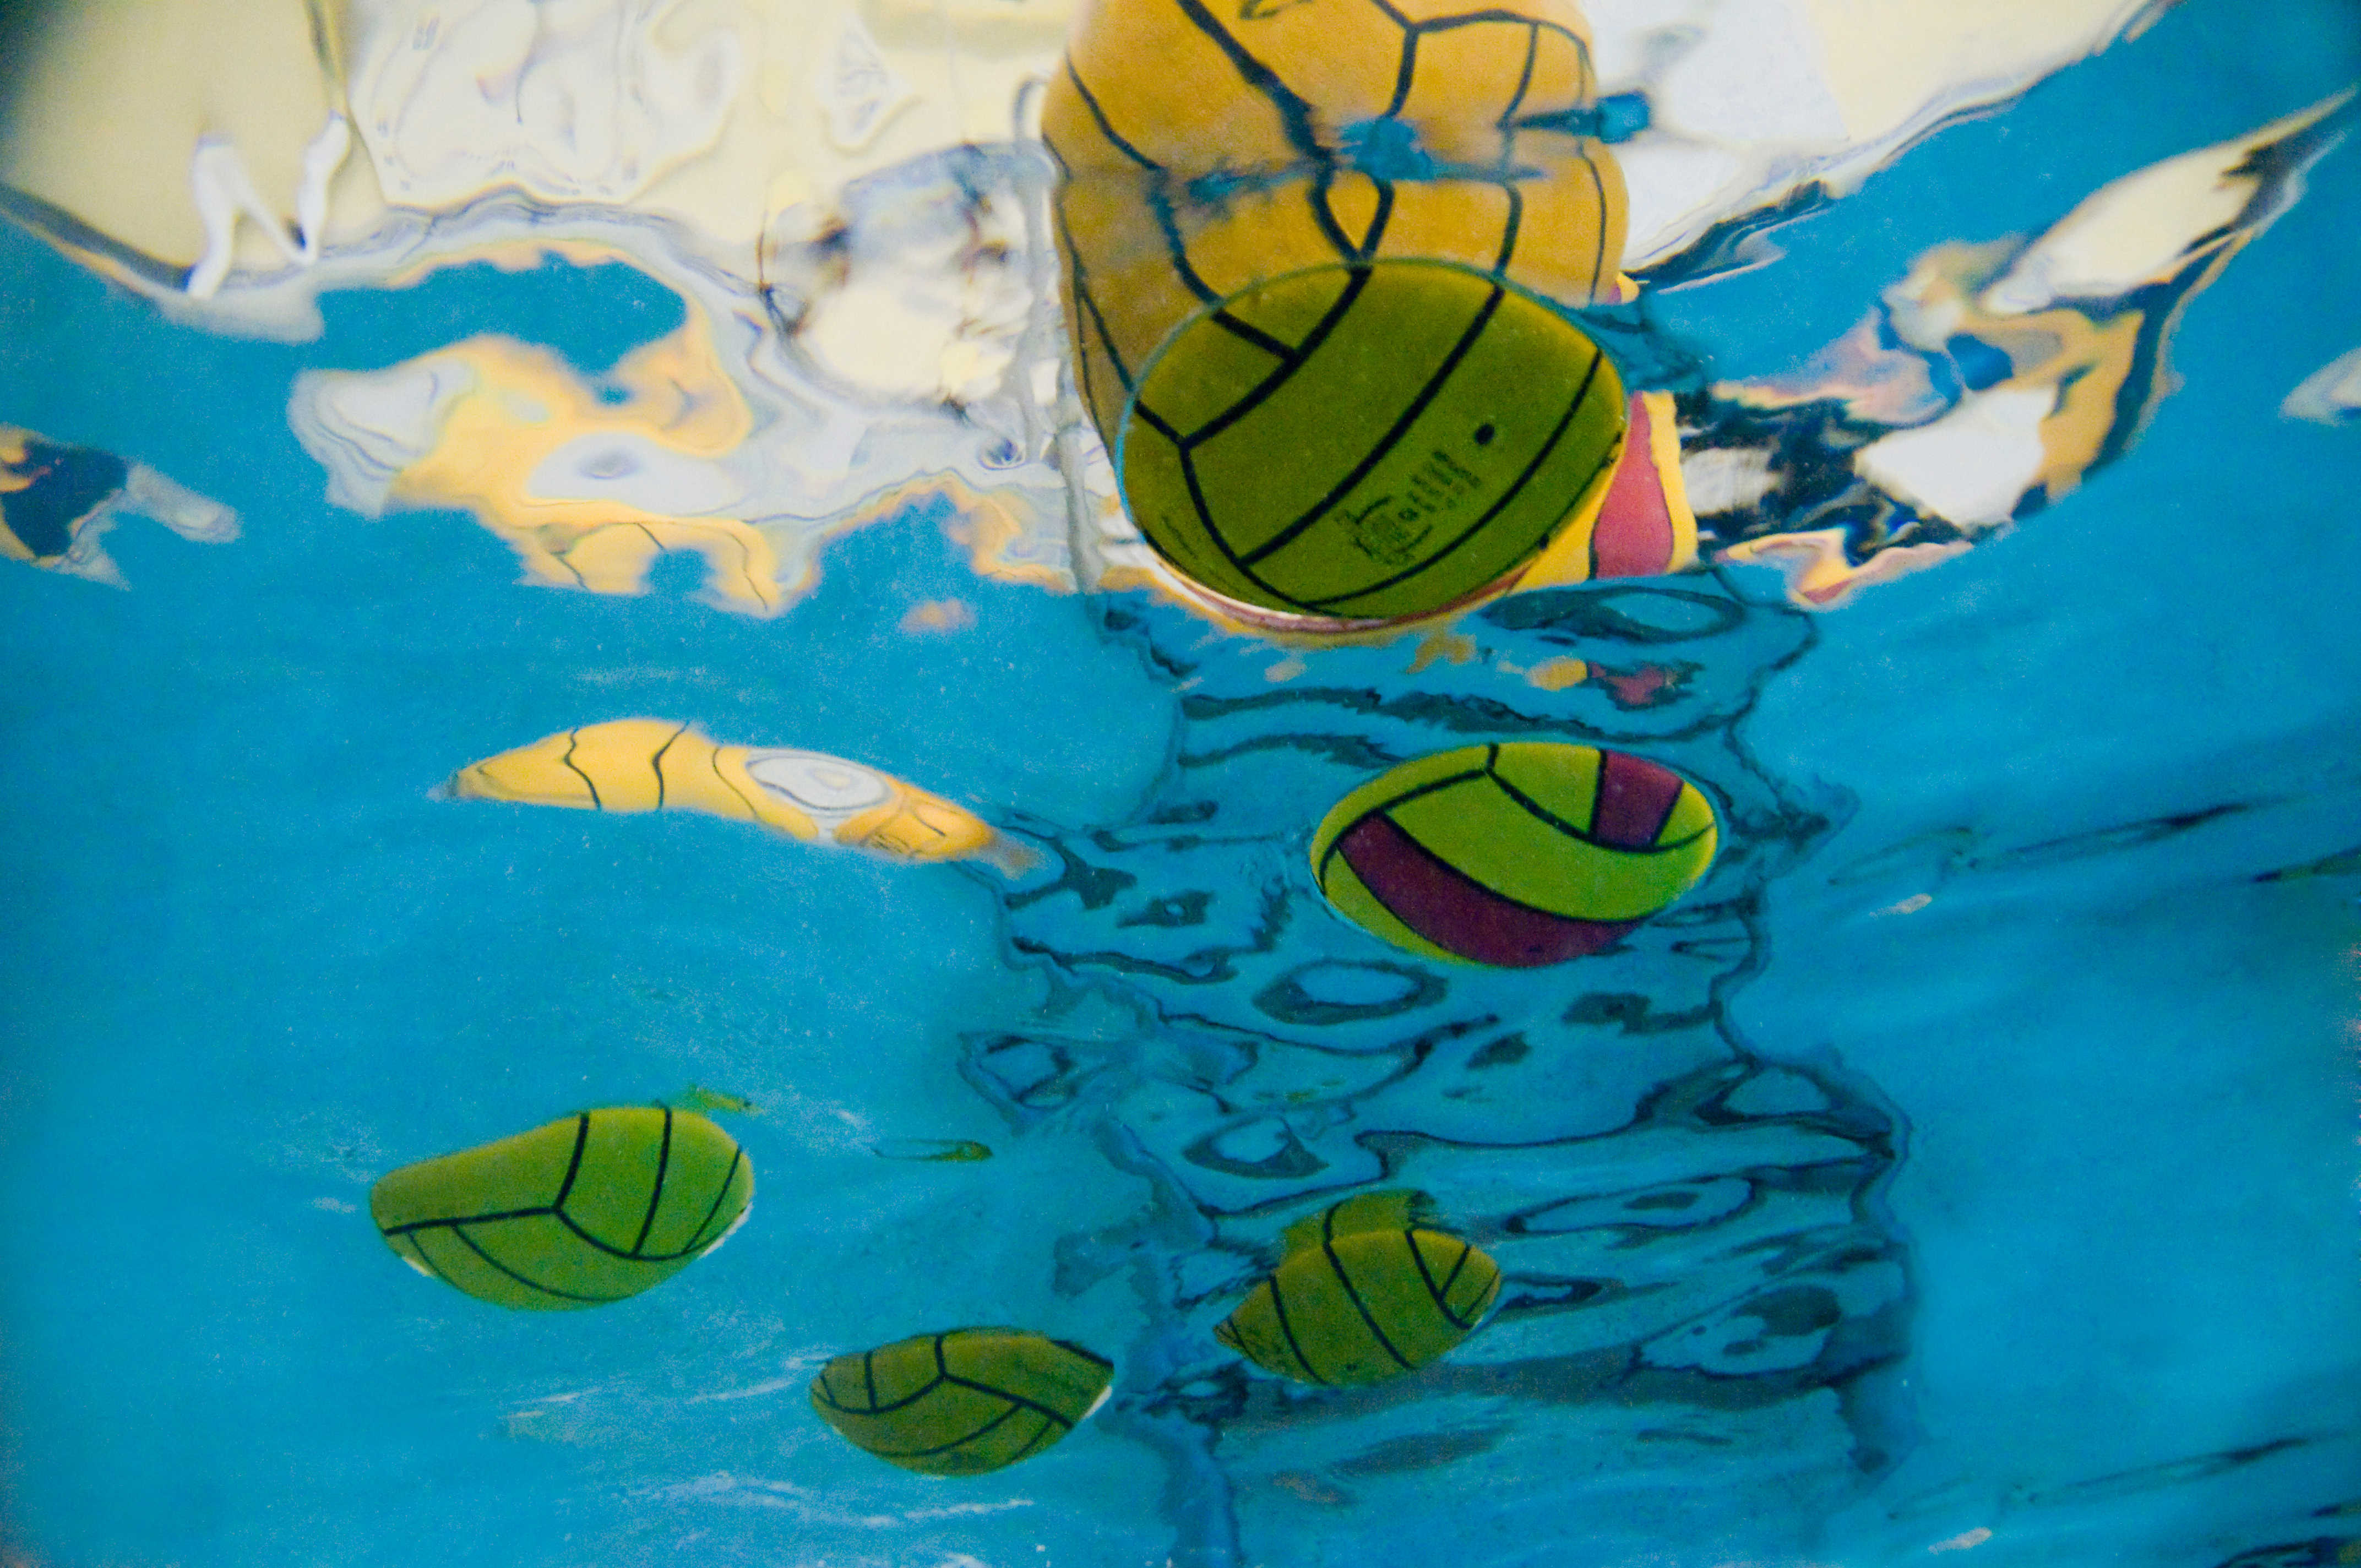 Willamette Valley Water Polo | water polo league for youth